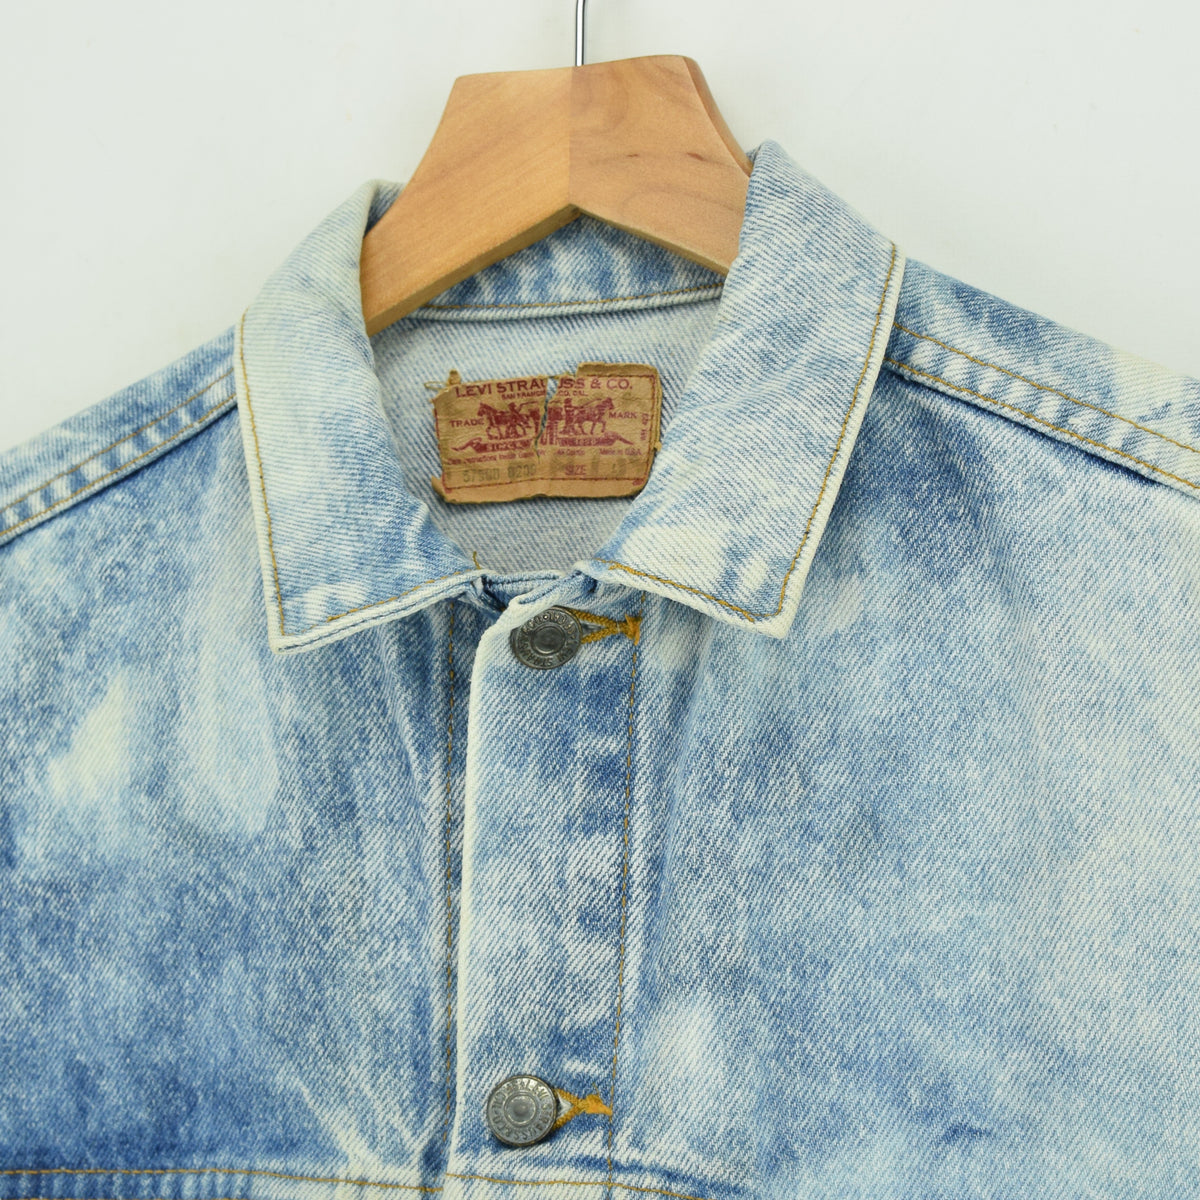 Vintage Levi 57508 Red Tab Bleached Blue Denim Trucker Jacket Made in USA S collar